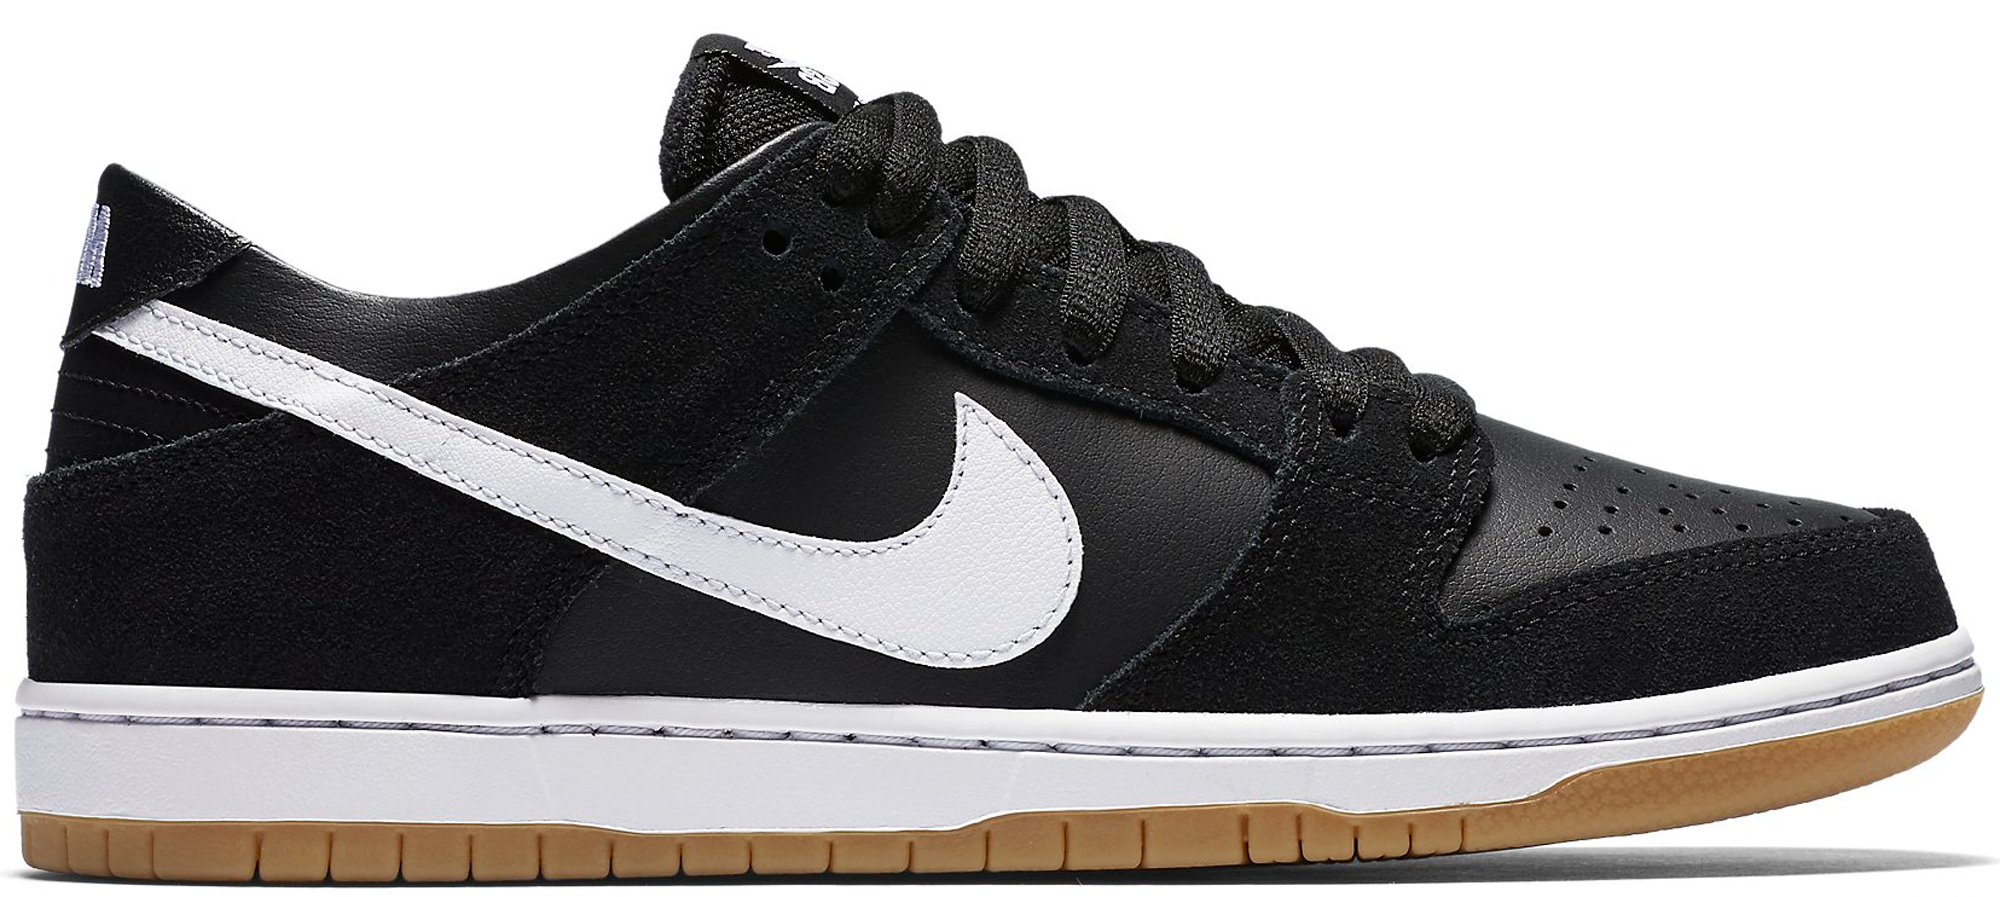 SB Dunk Low Black White Gum